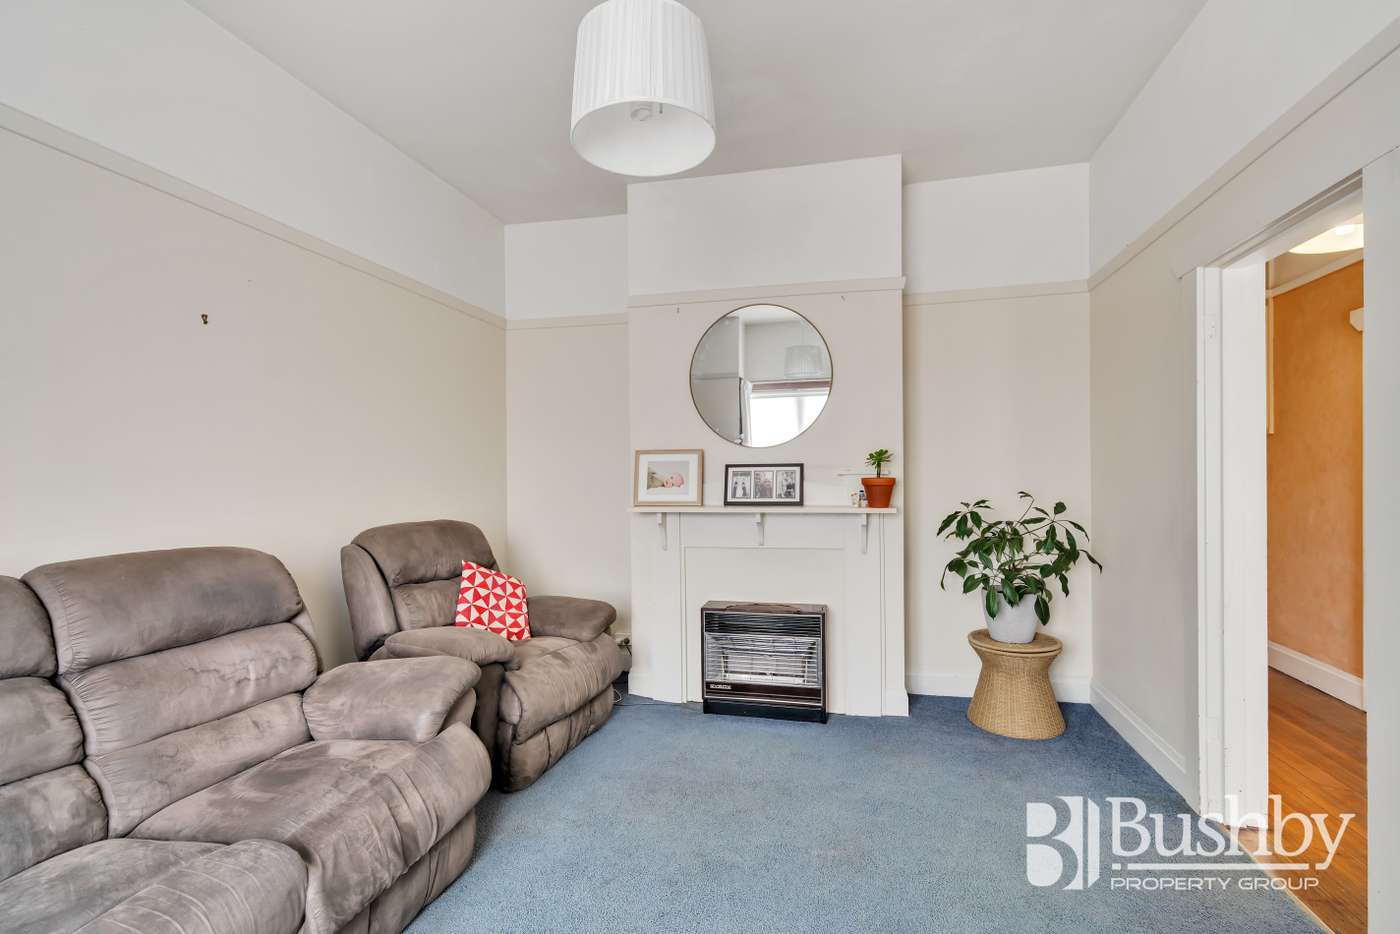 Sixth view of Homely house listing, 10 Donald Street, Invermay TAS 7248